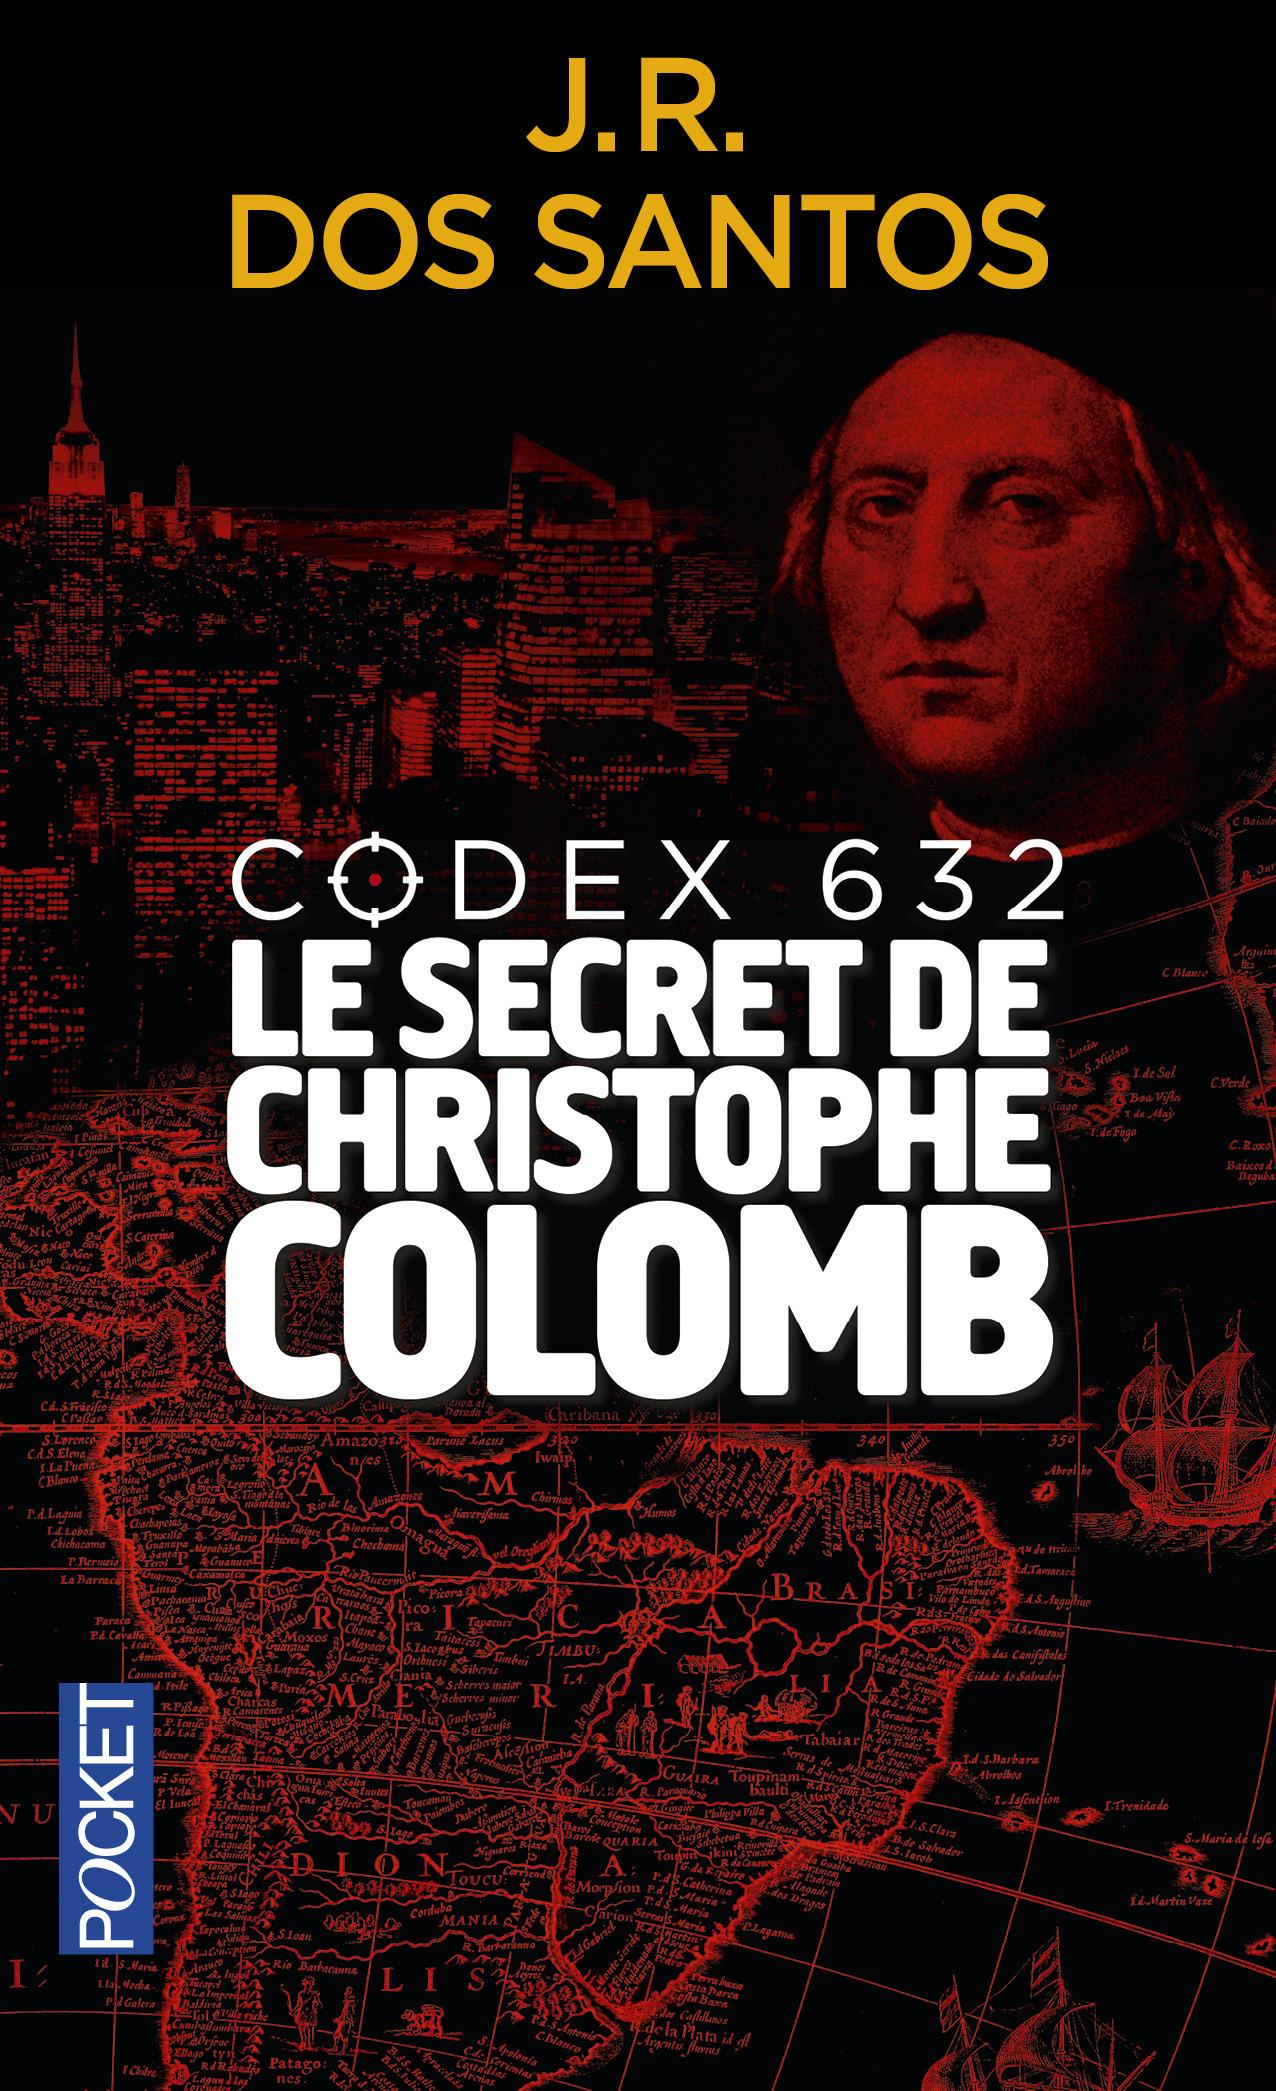 Codex 632 ; le secret de Christophe Colomb  - Jose Rodrigues Dos Santos